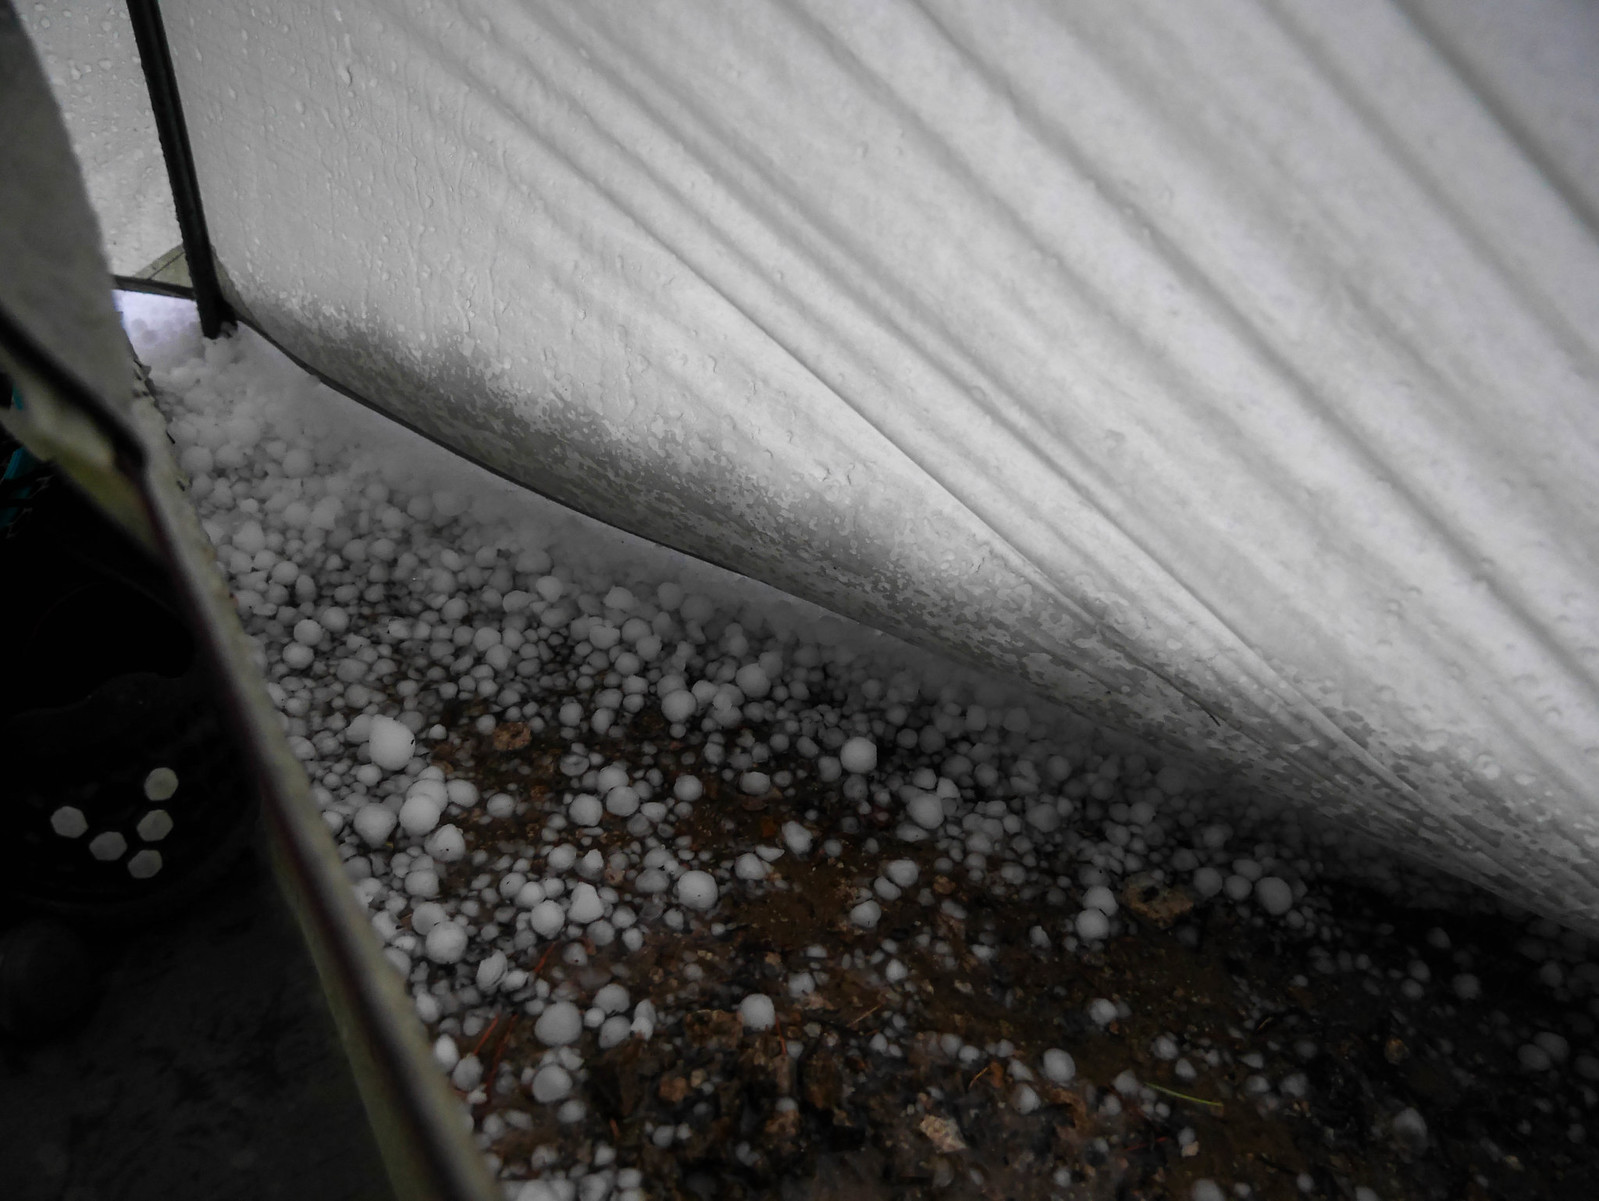 Pea-to-marble sized hail